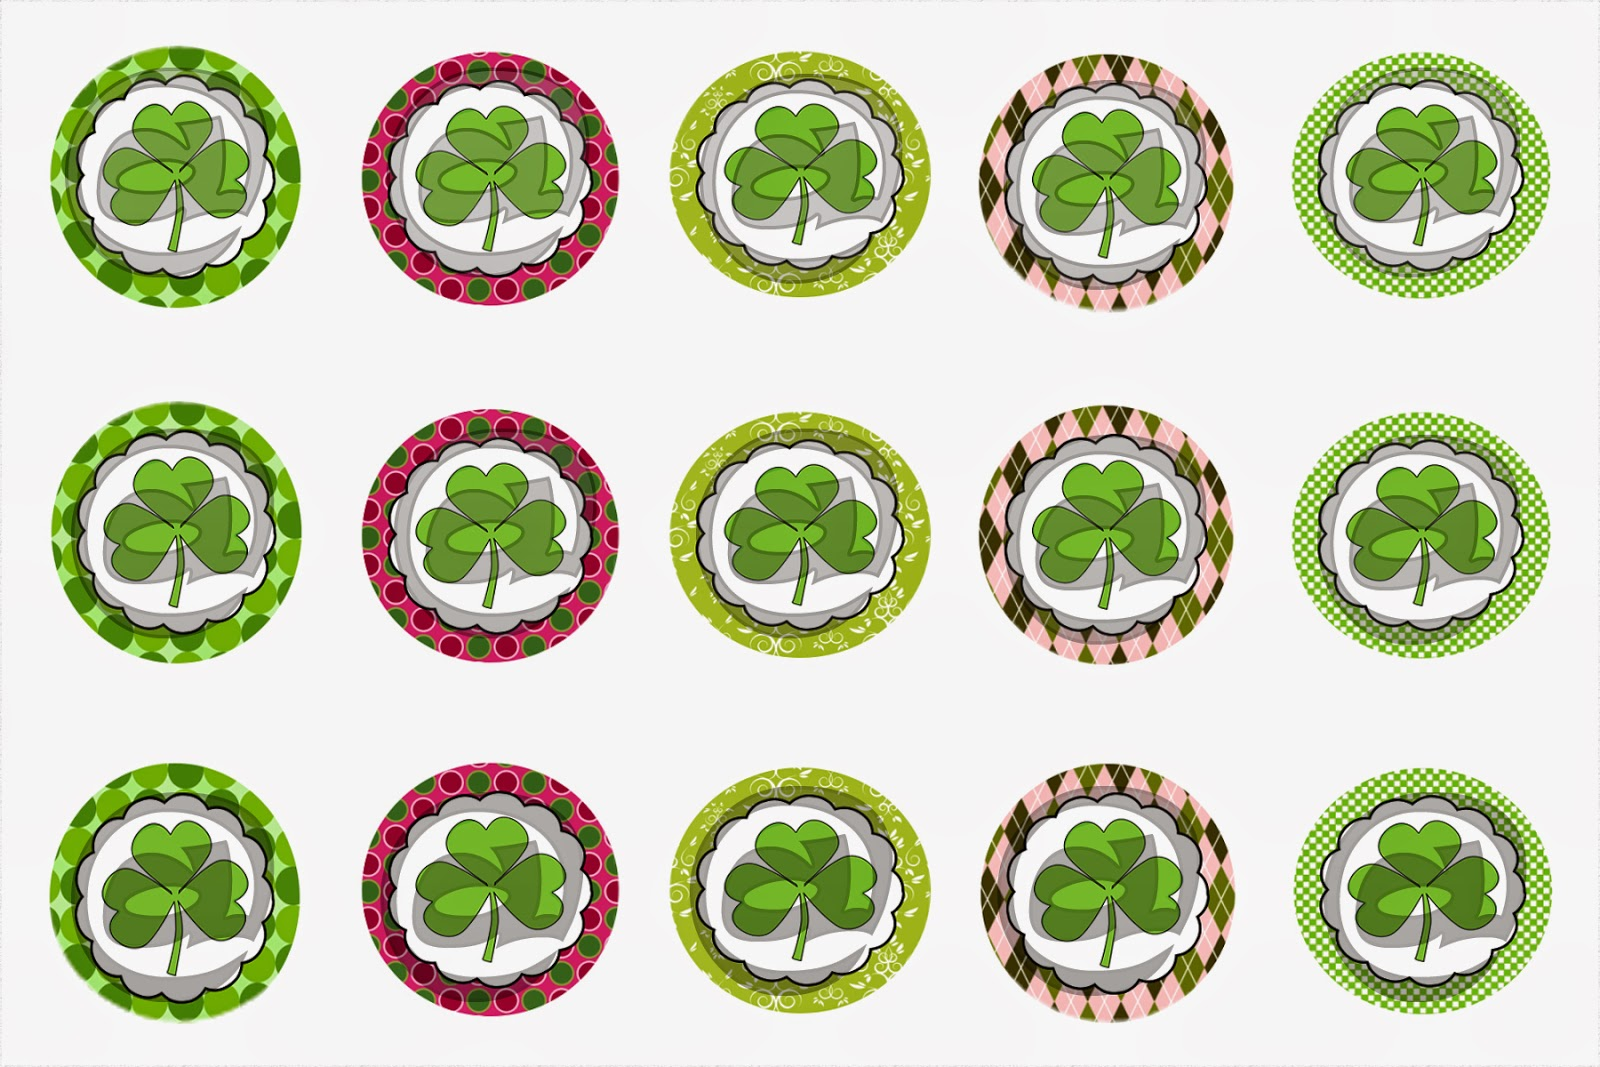 Unique bottle cap designs st patricks day bottle cap image for Cool bottle cap designs